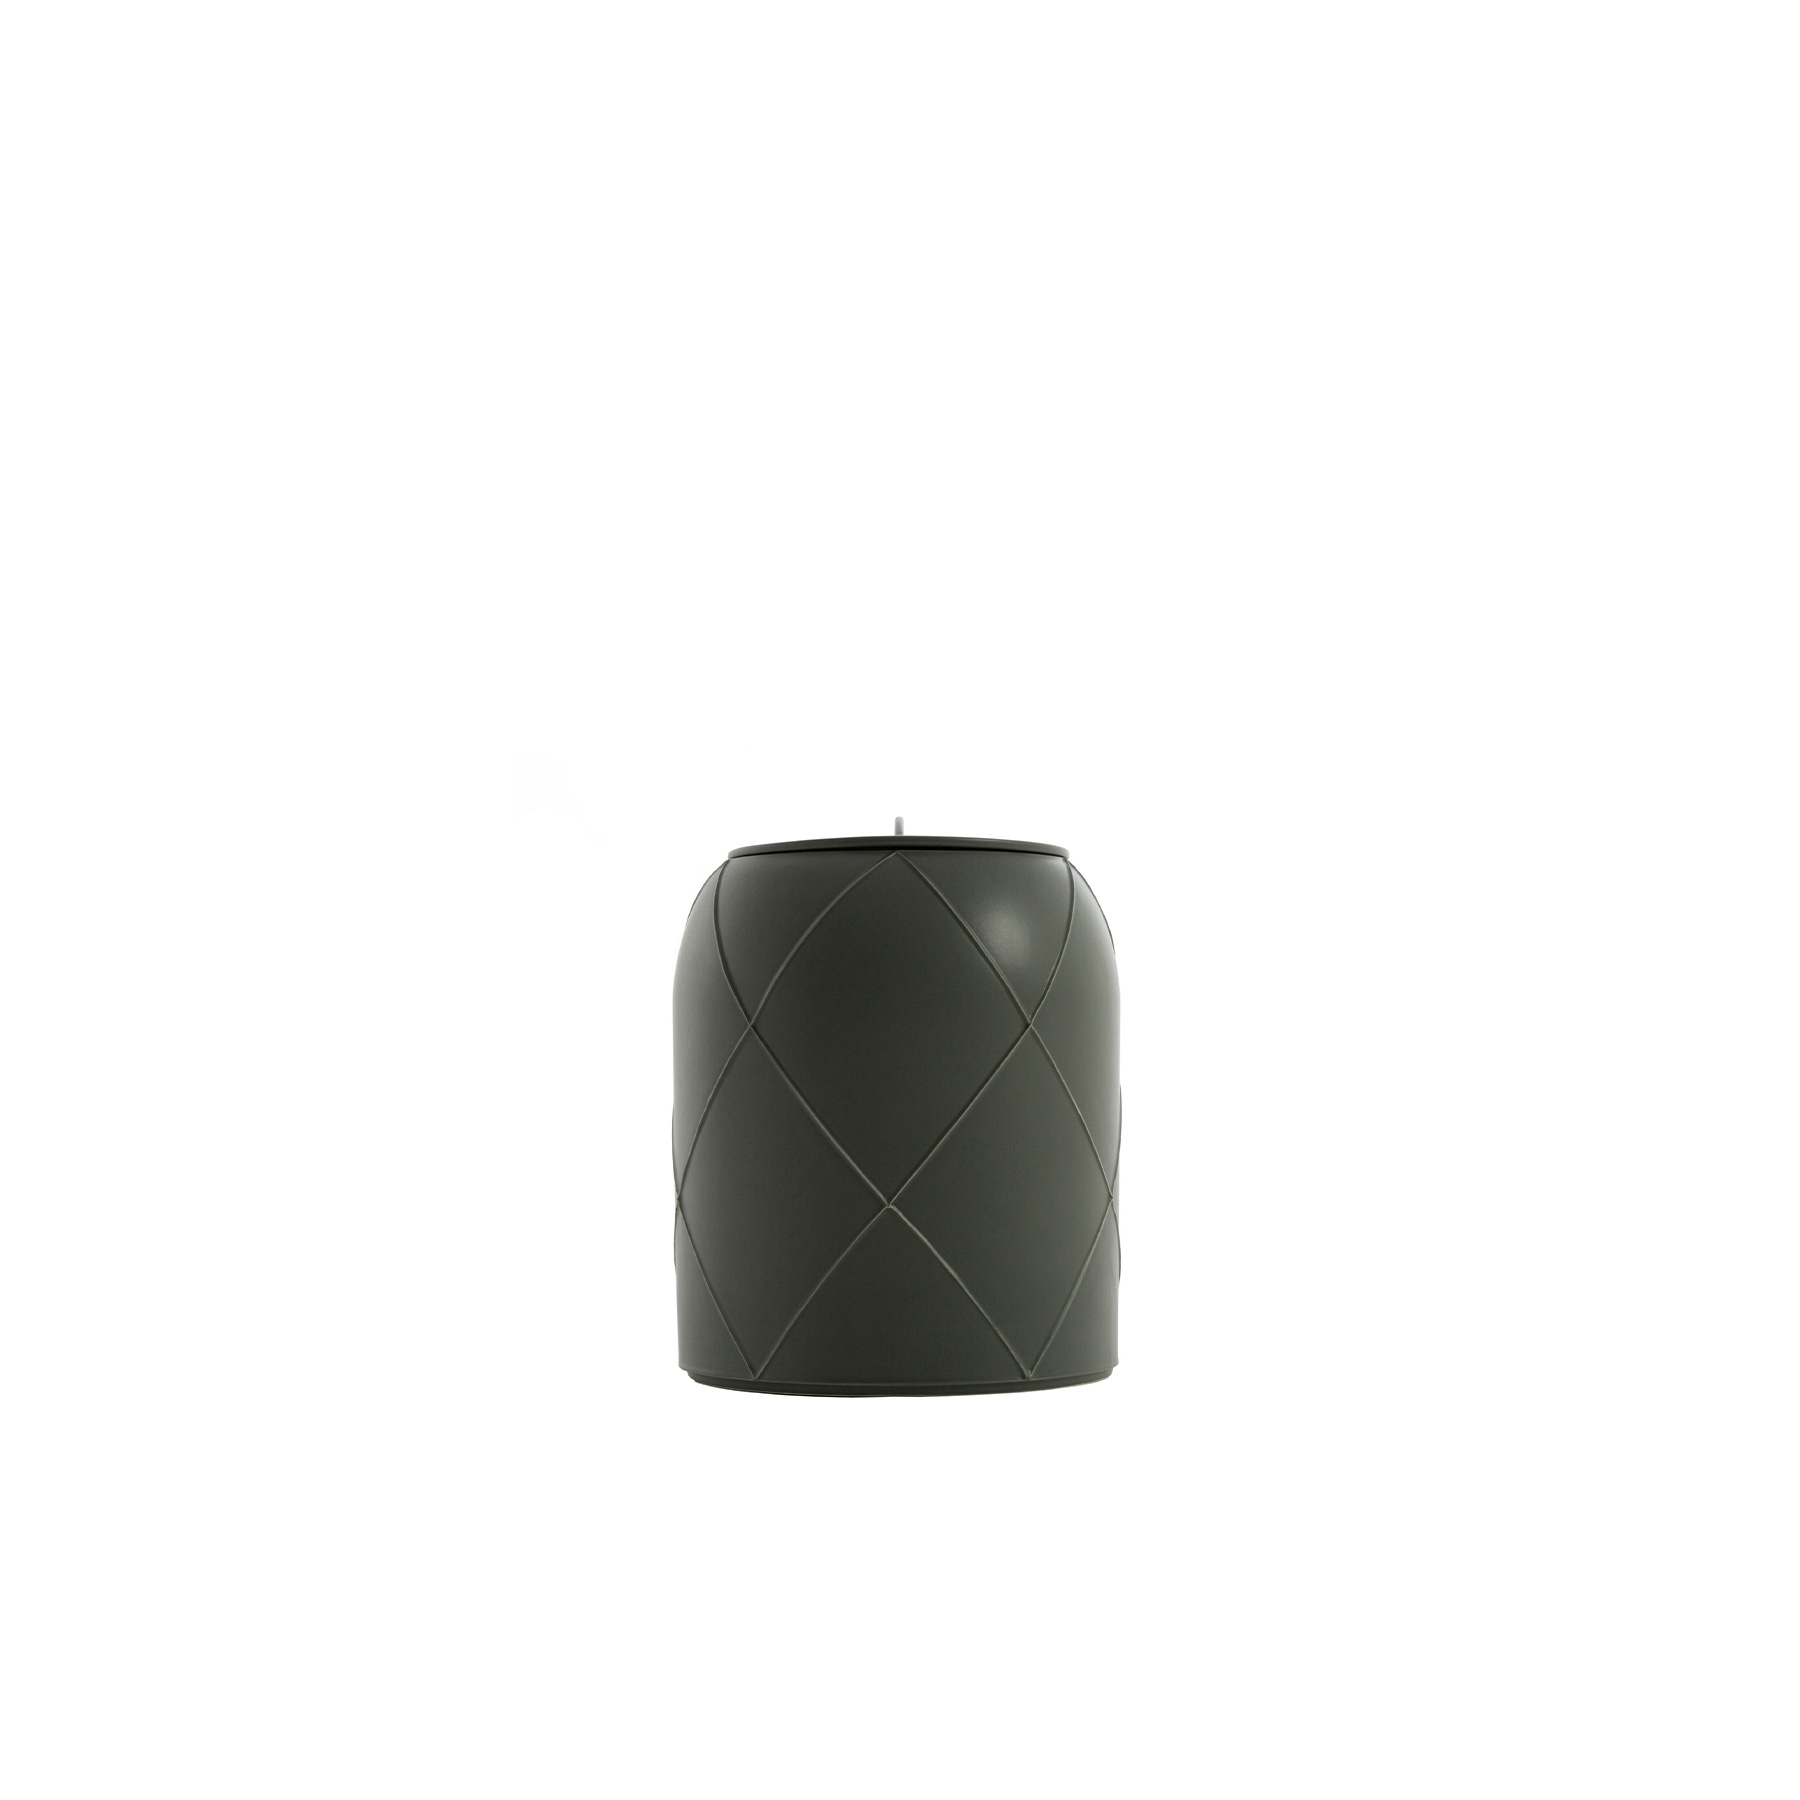 Canisters Vase With Lid C - Vase with lid C. Cast in white clay. Matt grey glaze. This modern ceramic vase will create a colourful and refined display in a modern kitchen or living room. Crafted of white clay with the slip casting technique, the cylindrical silhouette is decorated with a raised crisscross pattern finished in a matte grey-green glaze. This vase is part of the Seams Collection by designer Benjamin Hubert, who transformed the lines created by the slip casting moulds onto the surface of the clay into decorative details. The mould components are rotated in various positions to create different geometric patterns with every moulding. The lid has a demi-lune handle.